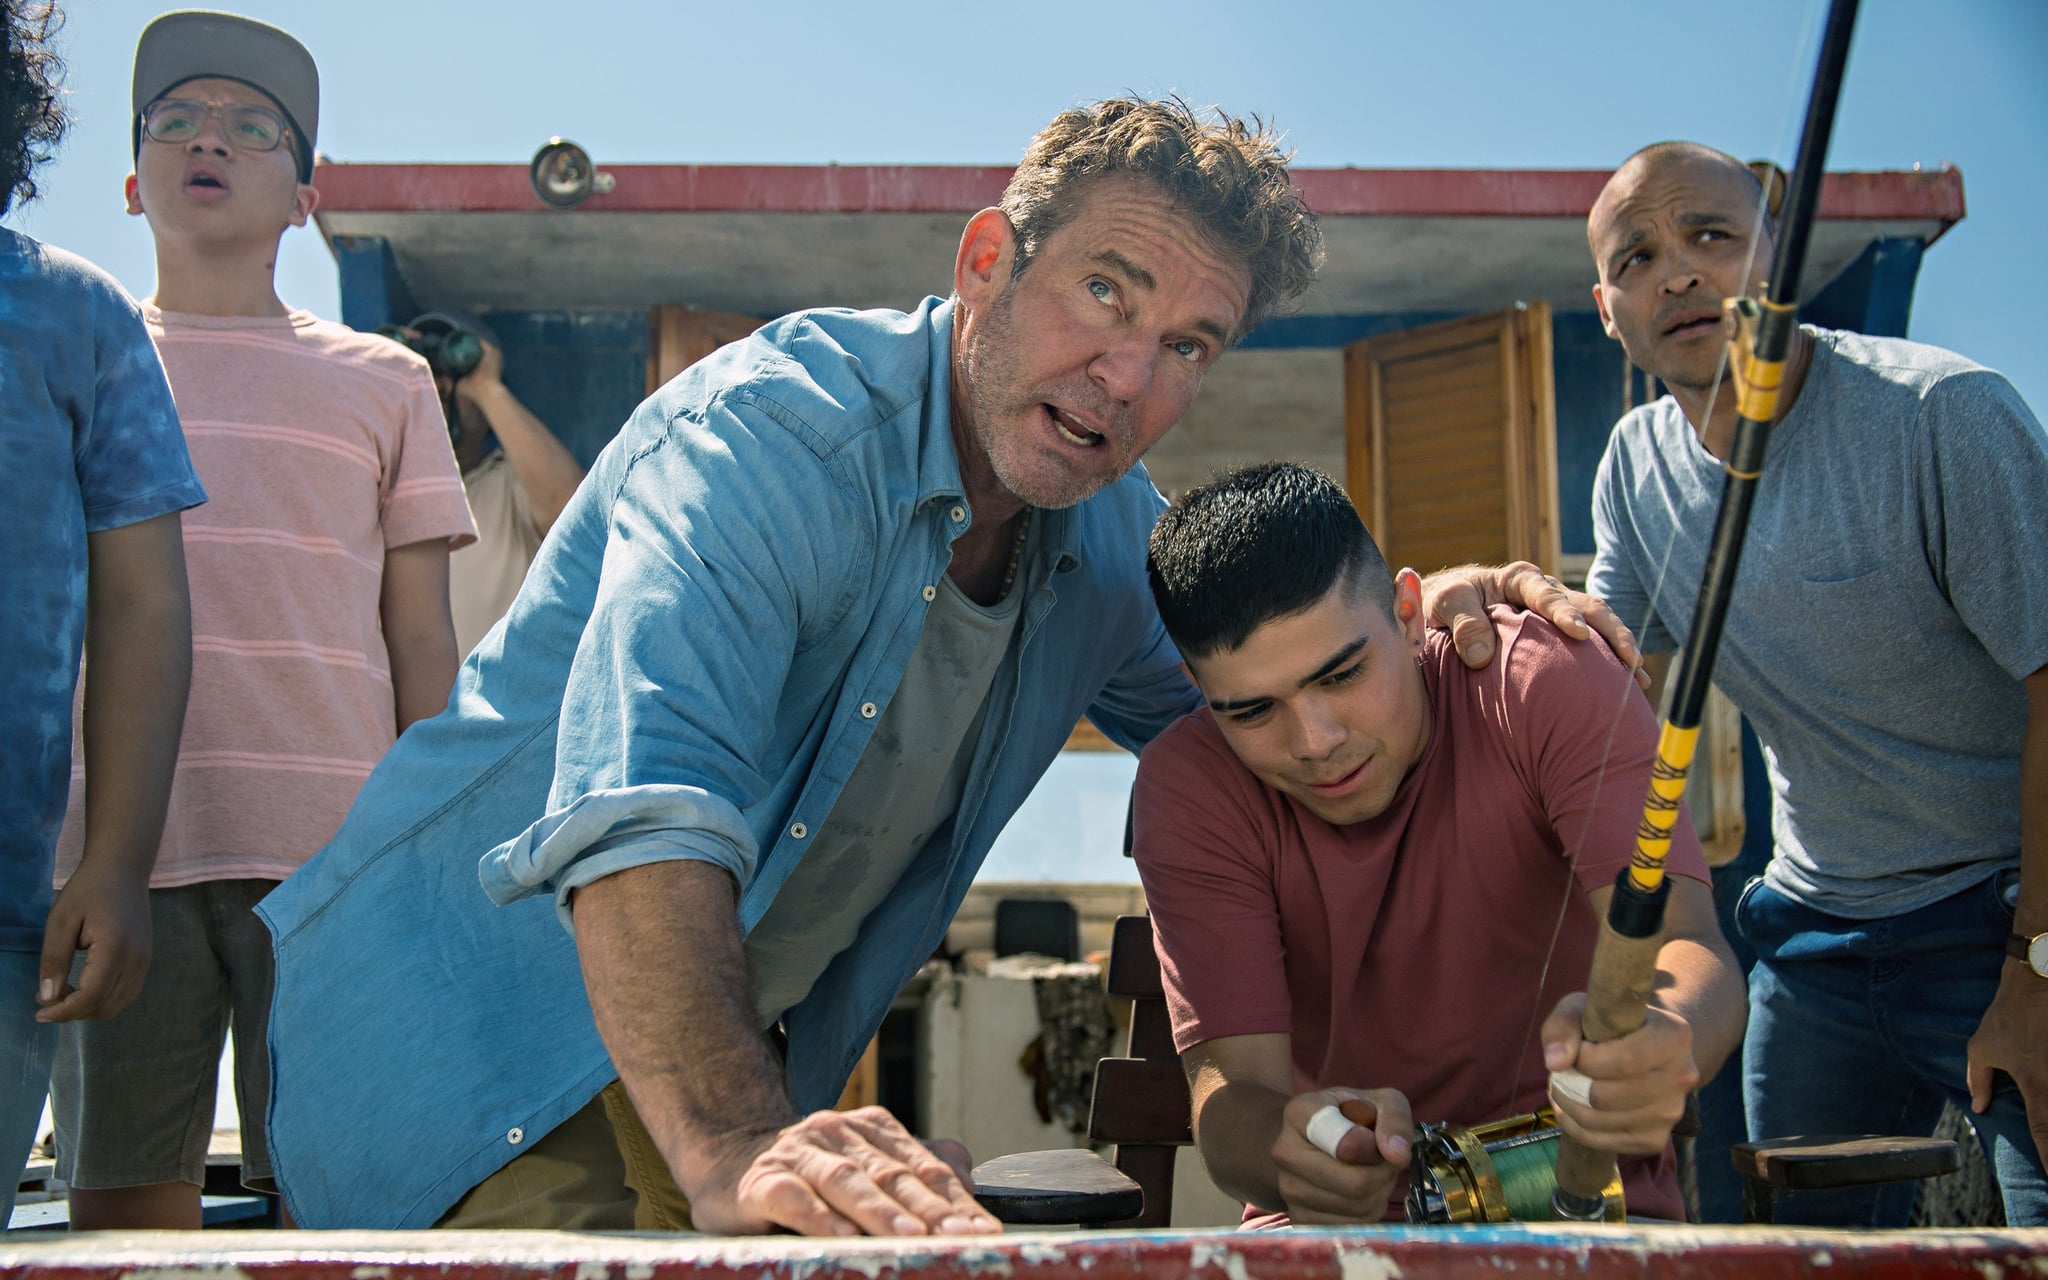 BLUE MIRACLE, centre: Dennis Quaid, right: Jimmy Gonzales, 2021. ph: Carlos Rodriguez /  Netflix /Courtesy Everett Collection